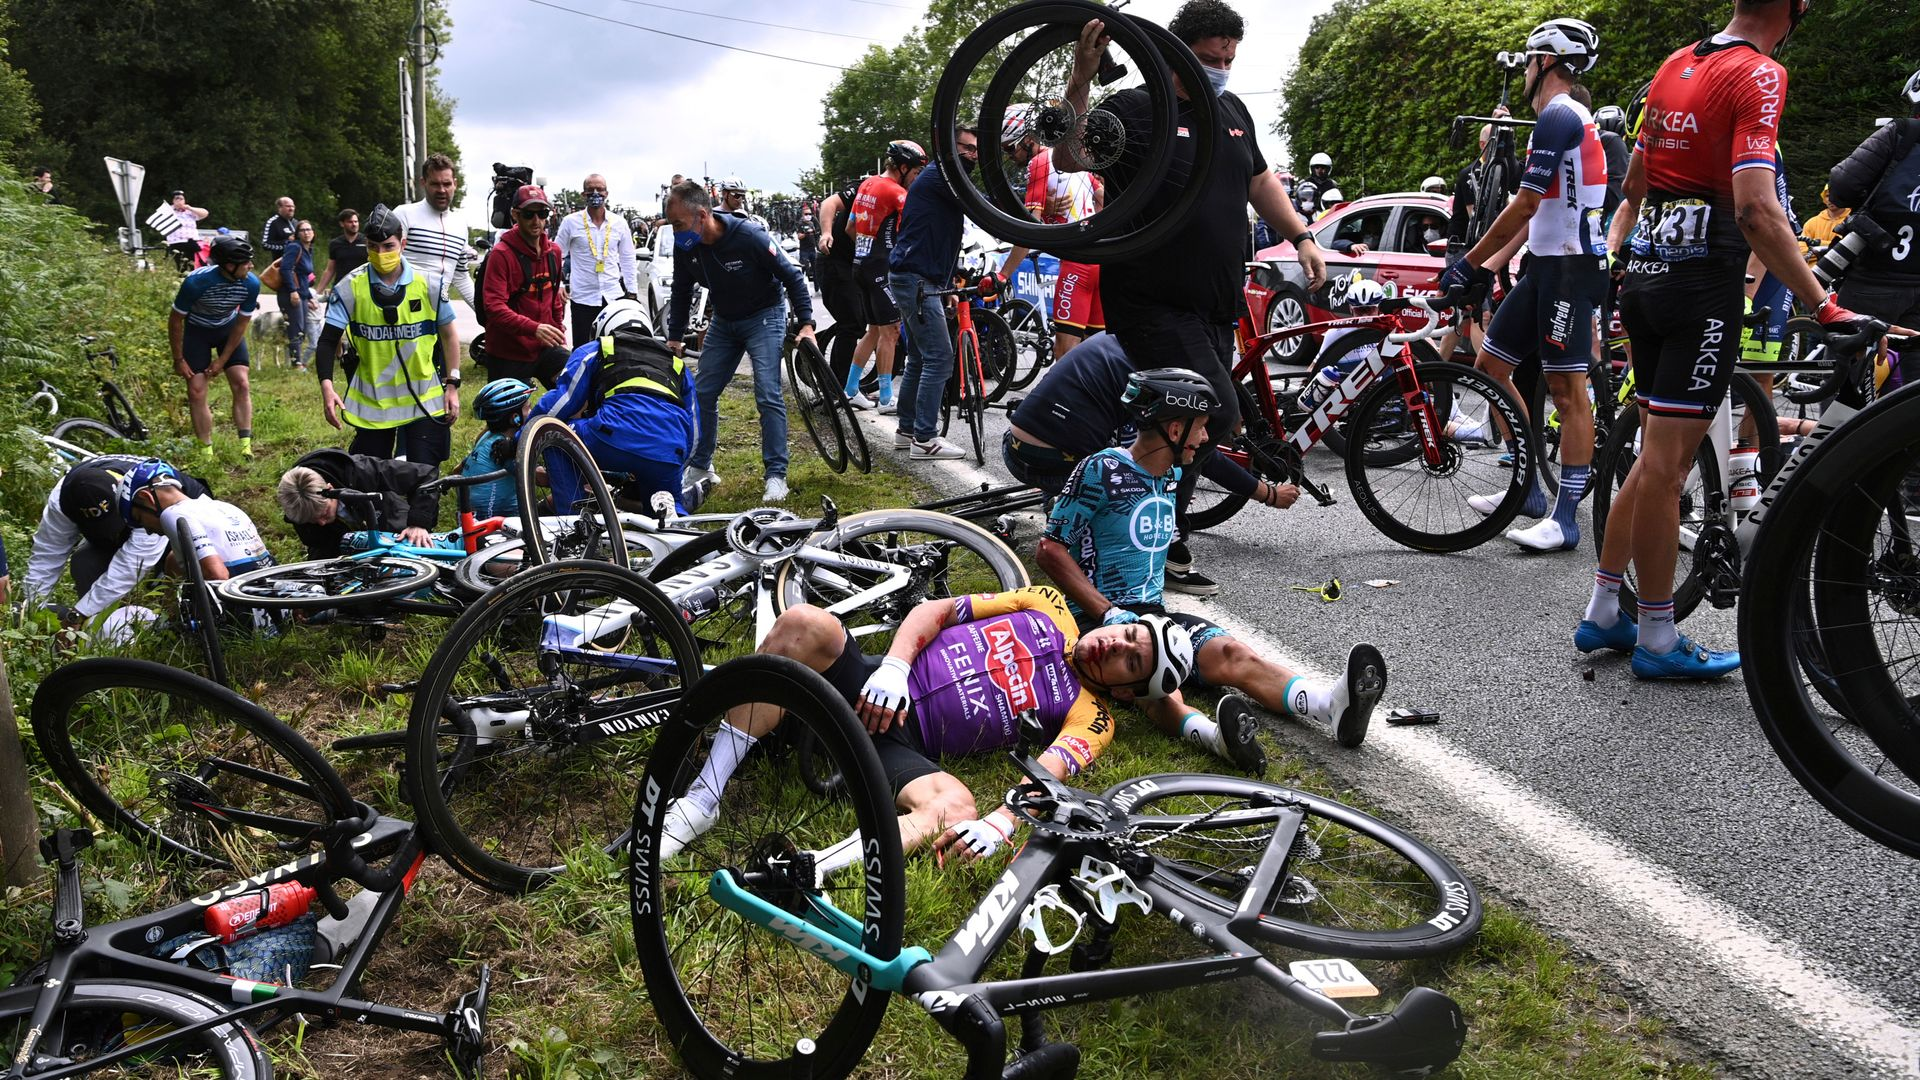 Fan who caused Tour de France crash goes on trial